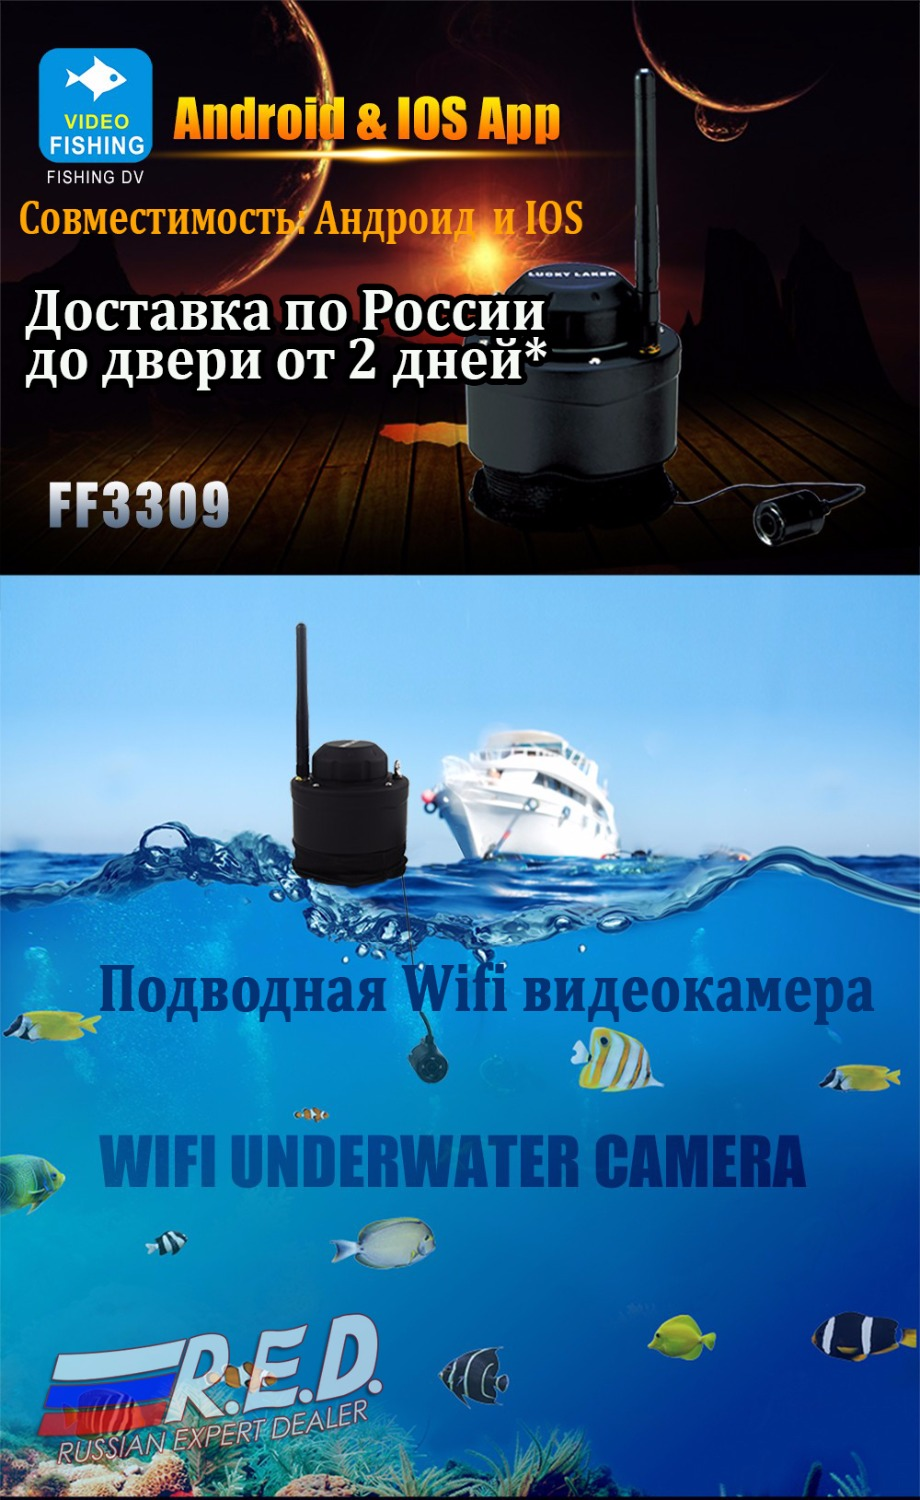 LUCKY FF3309 Portable Wifi Fishing Inspection Underwater Fishing Camera&Inspection for Android for IOS Operating Range 80 m автомобиль газ 3309 бес шасси